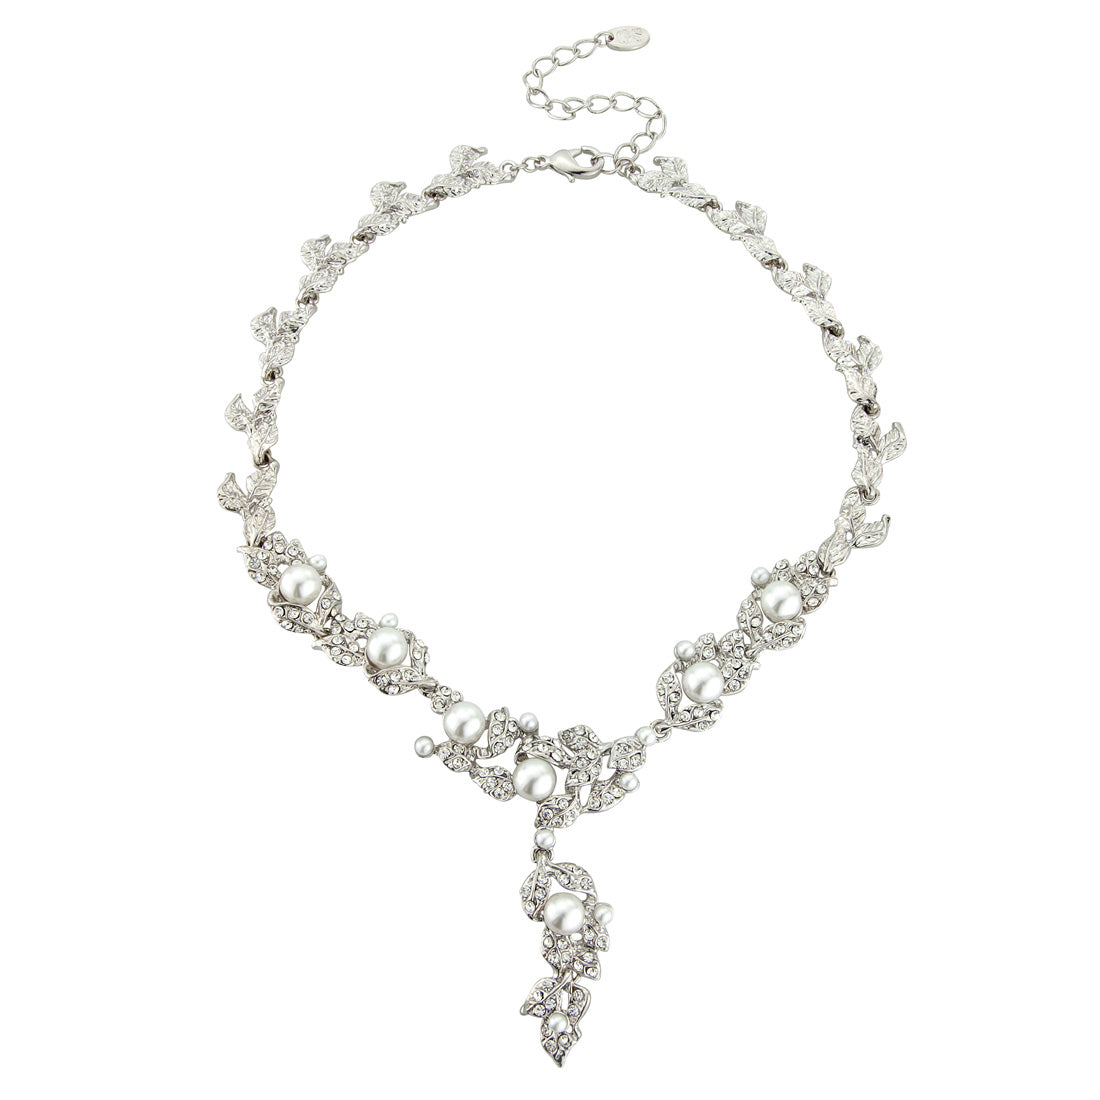 Extravagant in Pearls Vintage Style Necklace